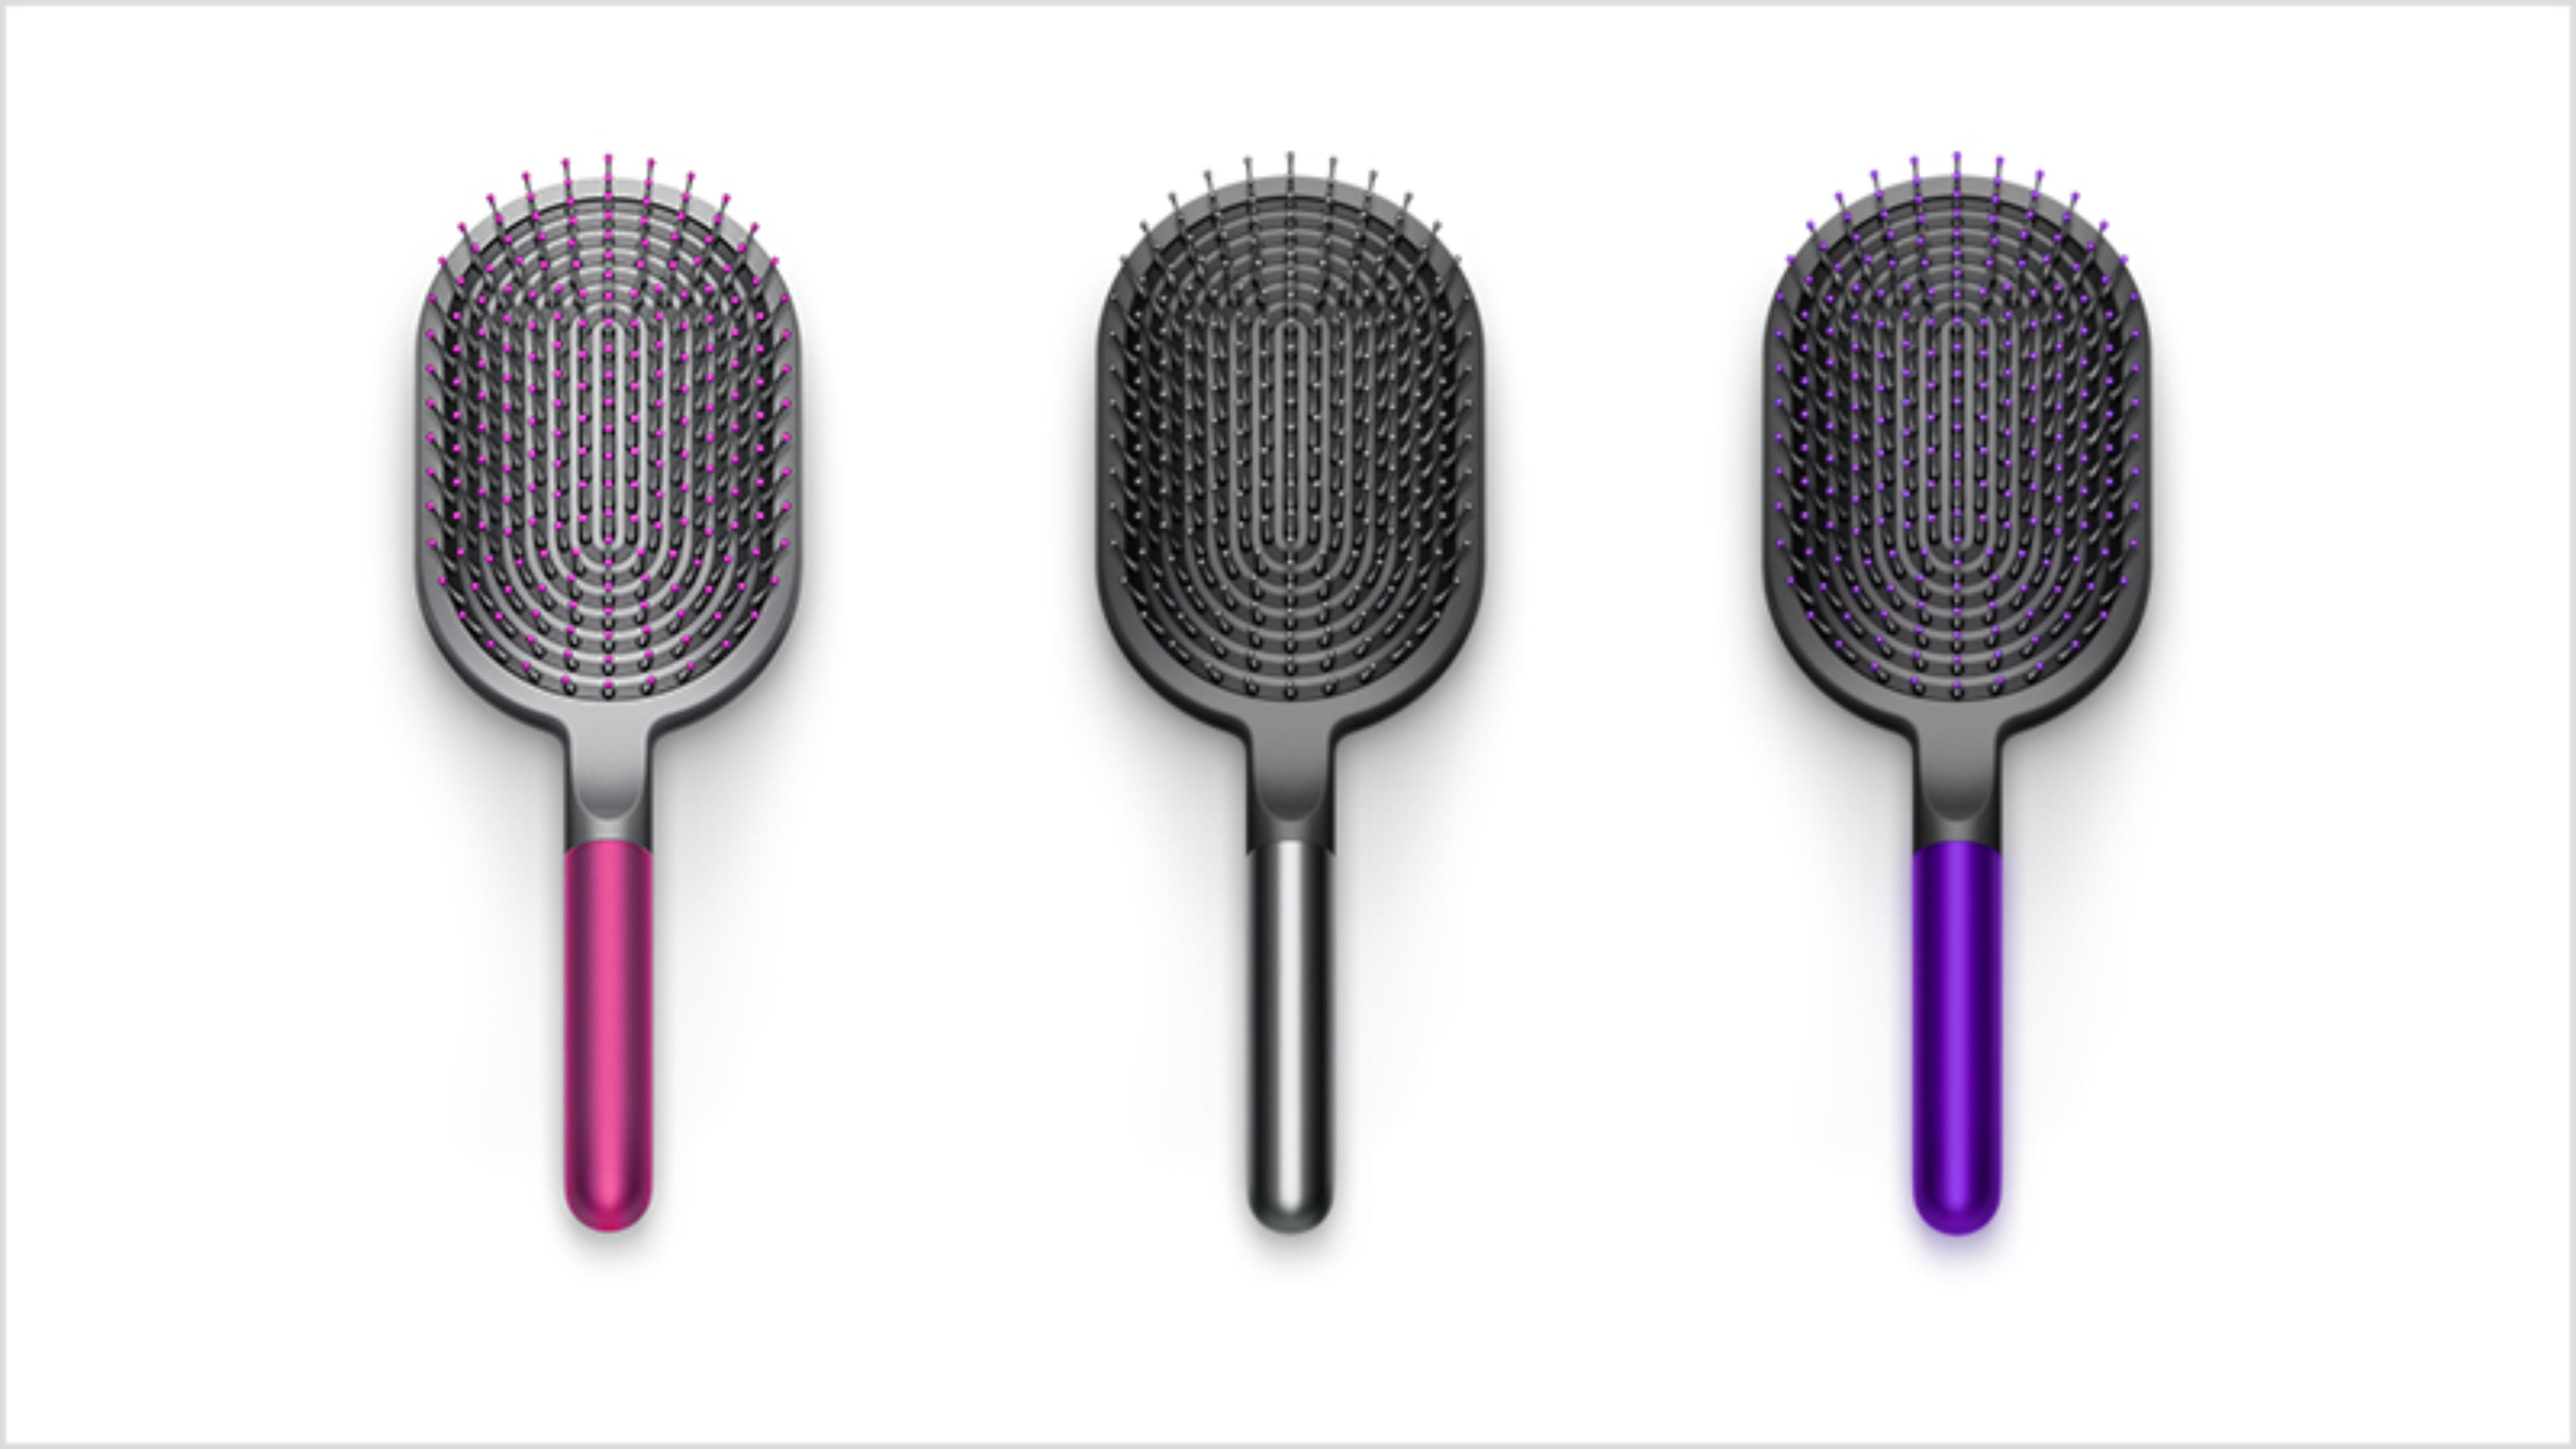 Dyson-designed Paddle brush in Fuchsia, Purple and Nickel